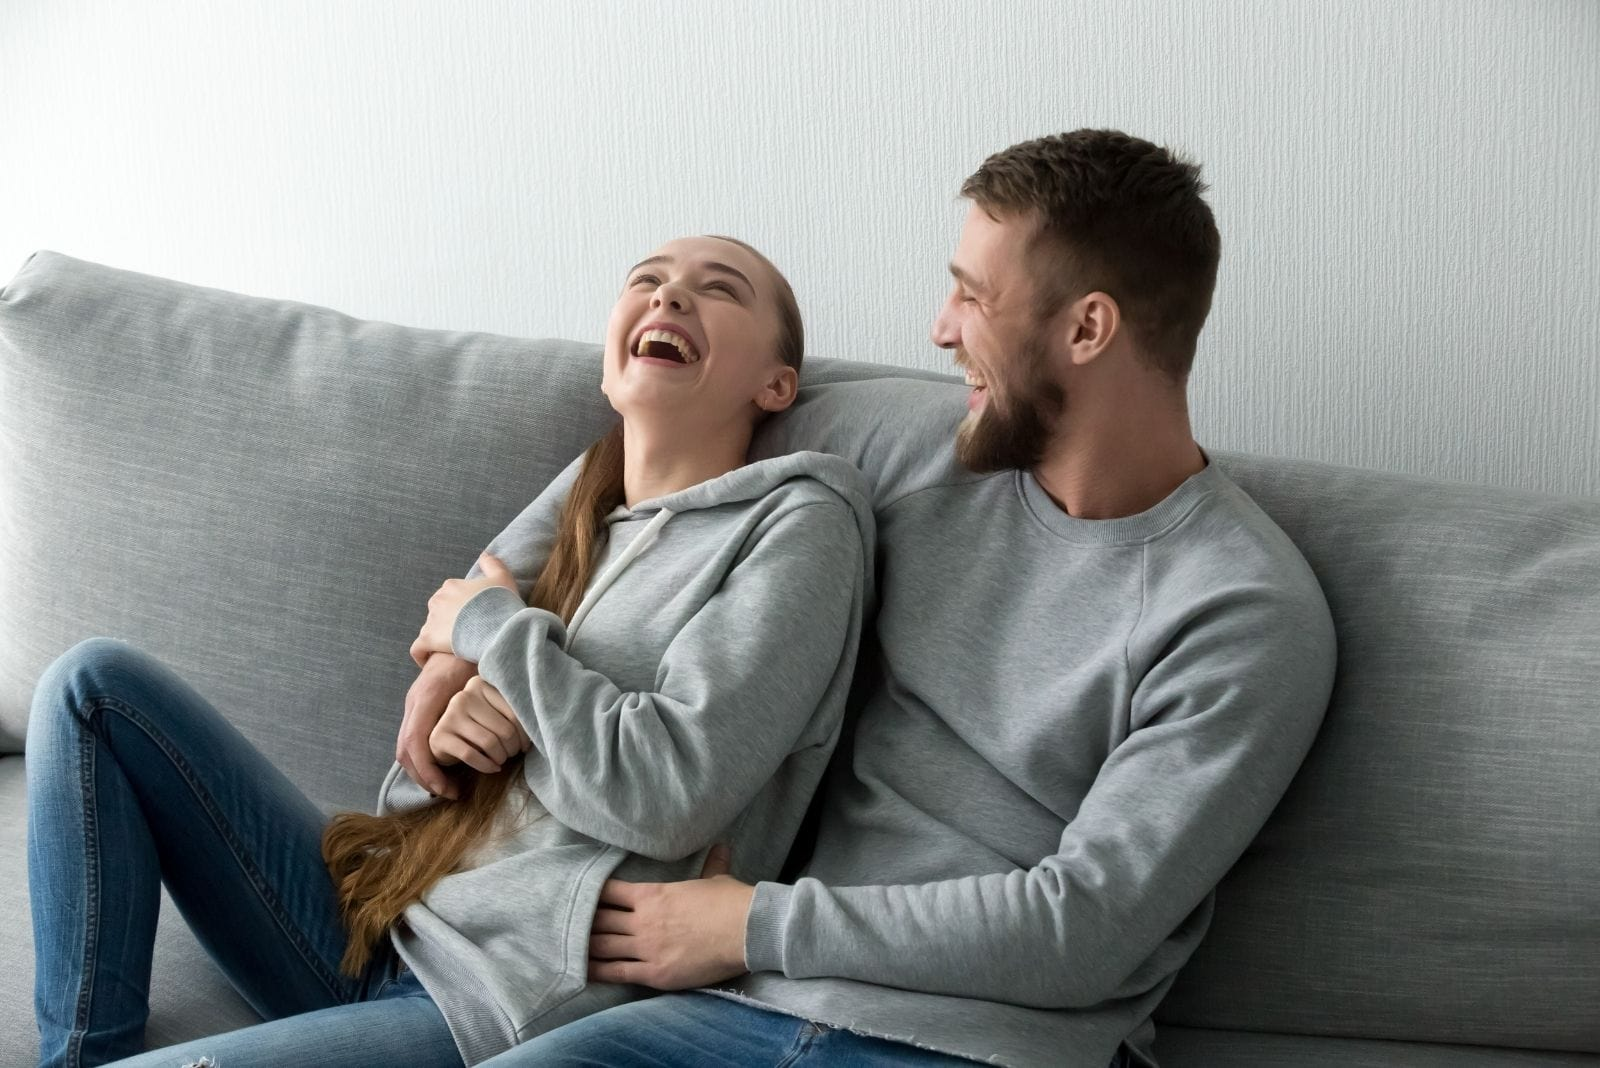 cheerful couple laughing and chilling in the gray couch